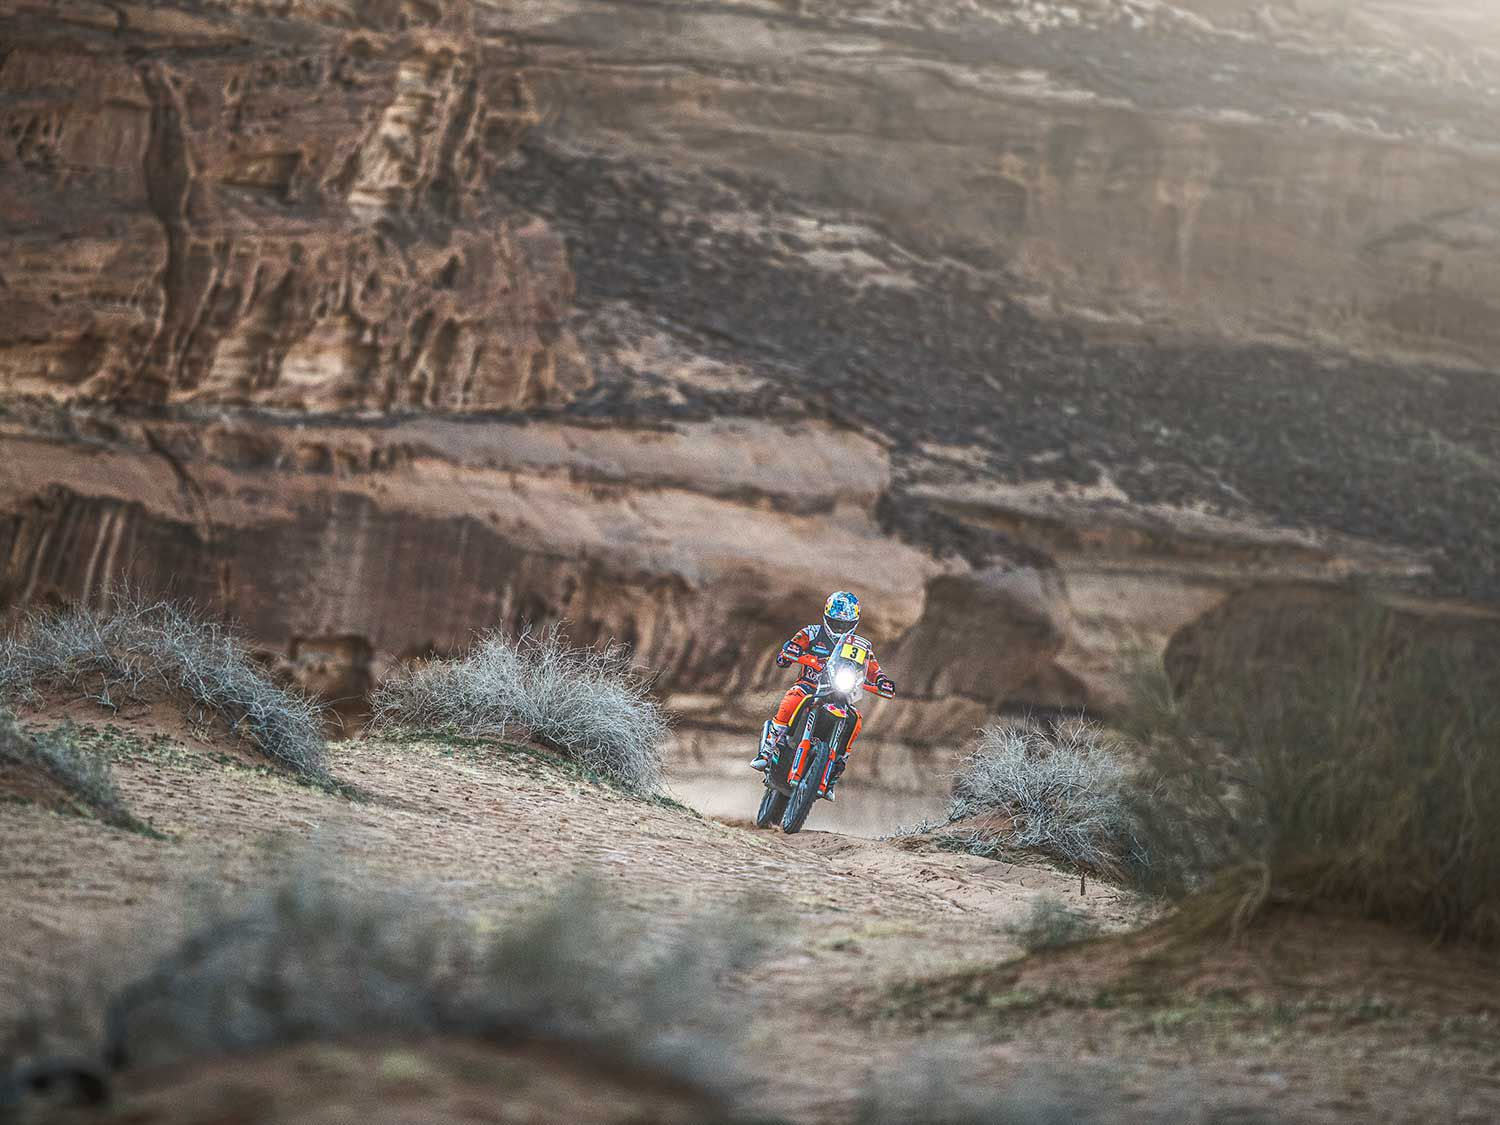 Sam Sunderland (Great Britain) races during Stage 5 of Rally Dakar 2020 from Al-'Ula to Ha'il aboard his Red Bull KTM Factory Team bike.